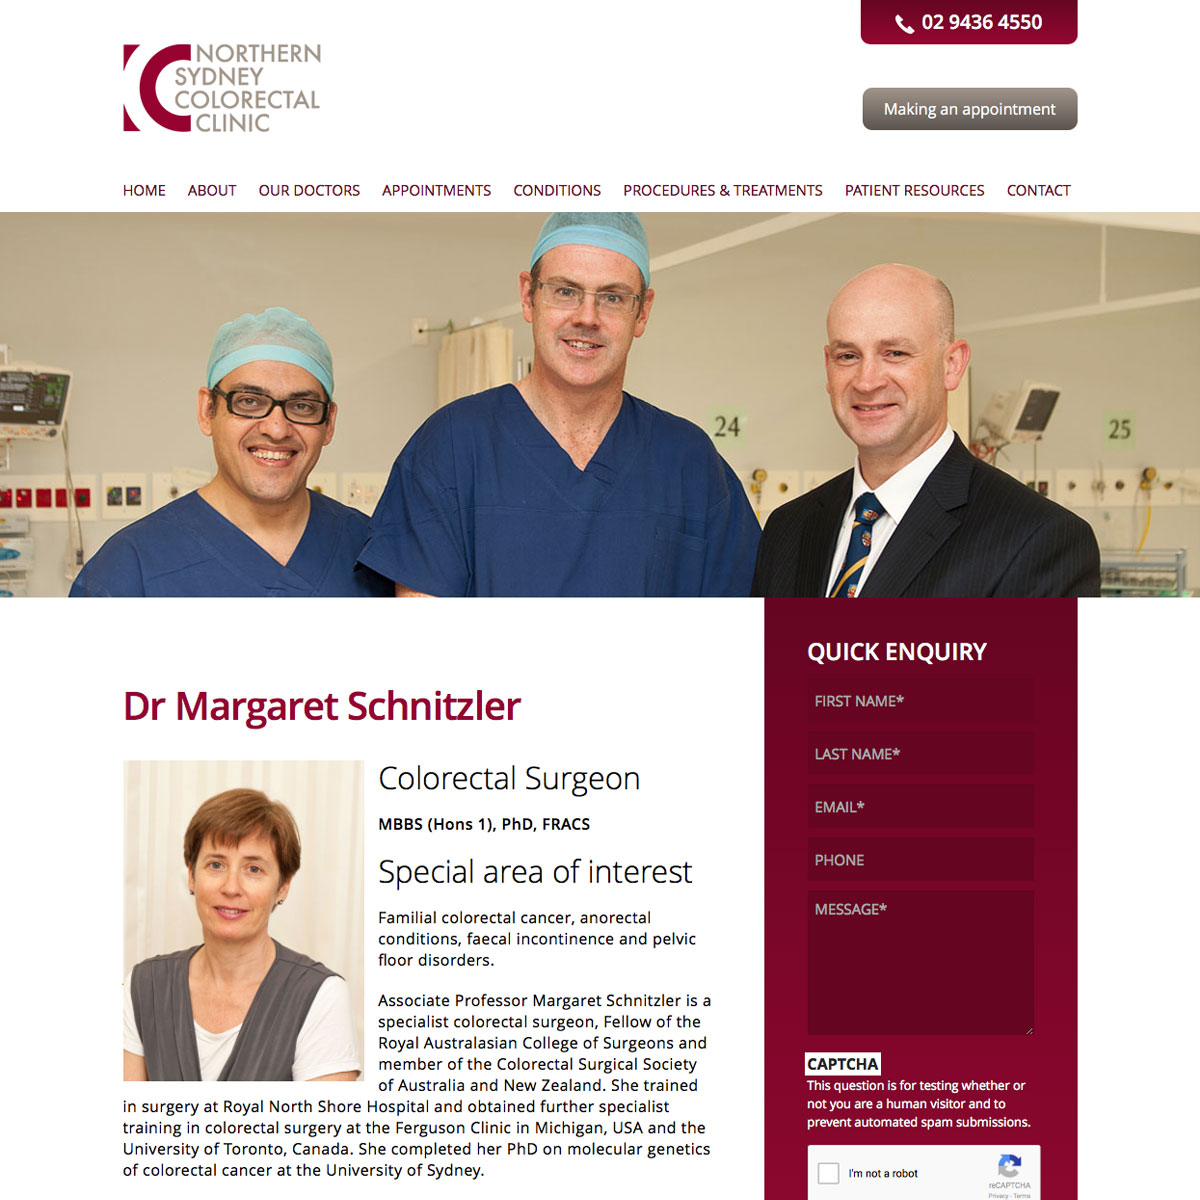 Northern Sydney Colorectal Clinic Dr Margerat Schintzler